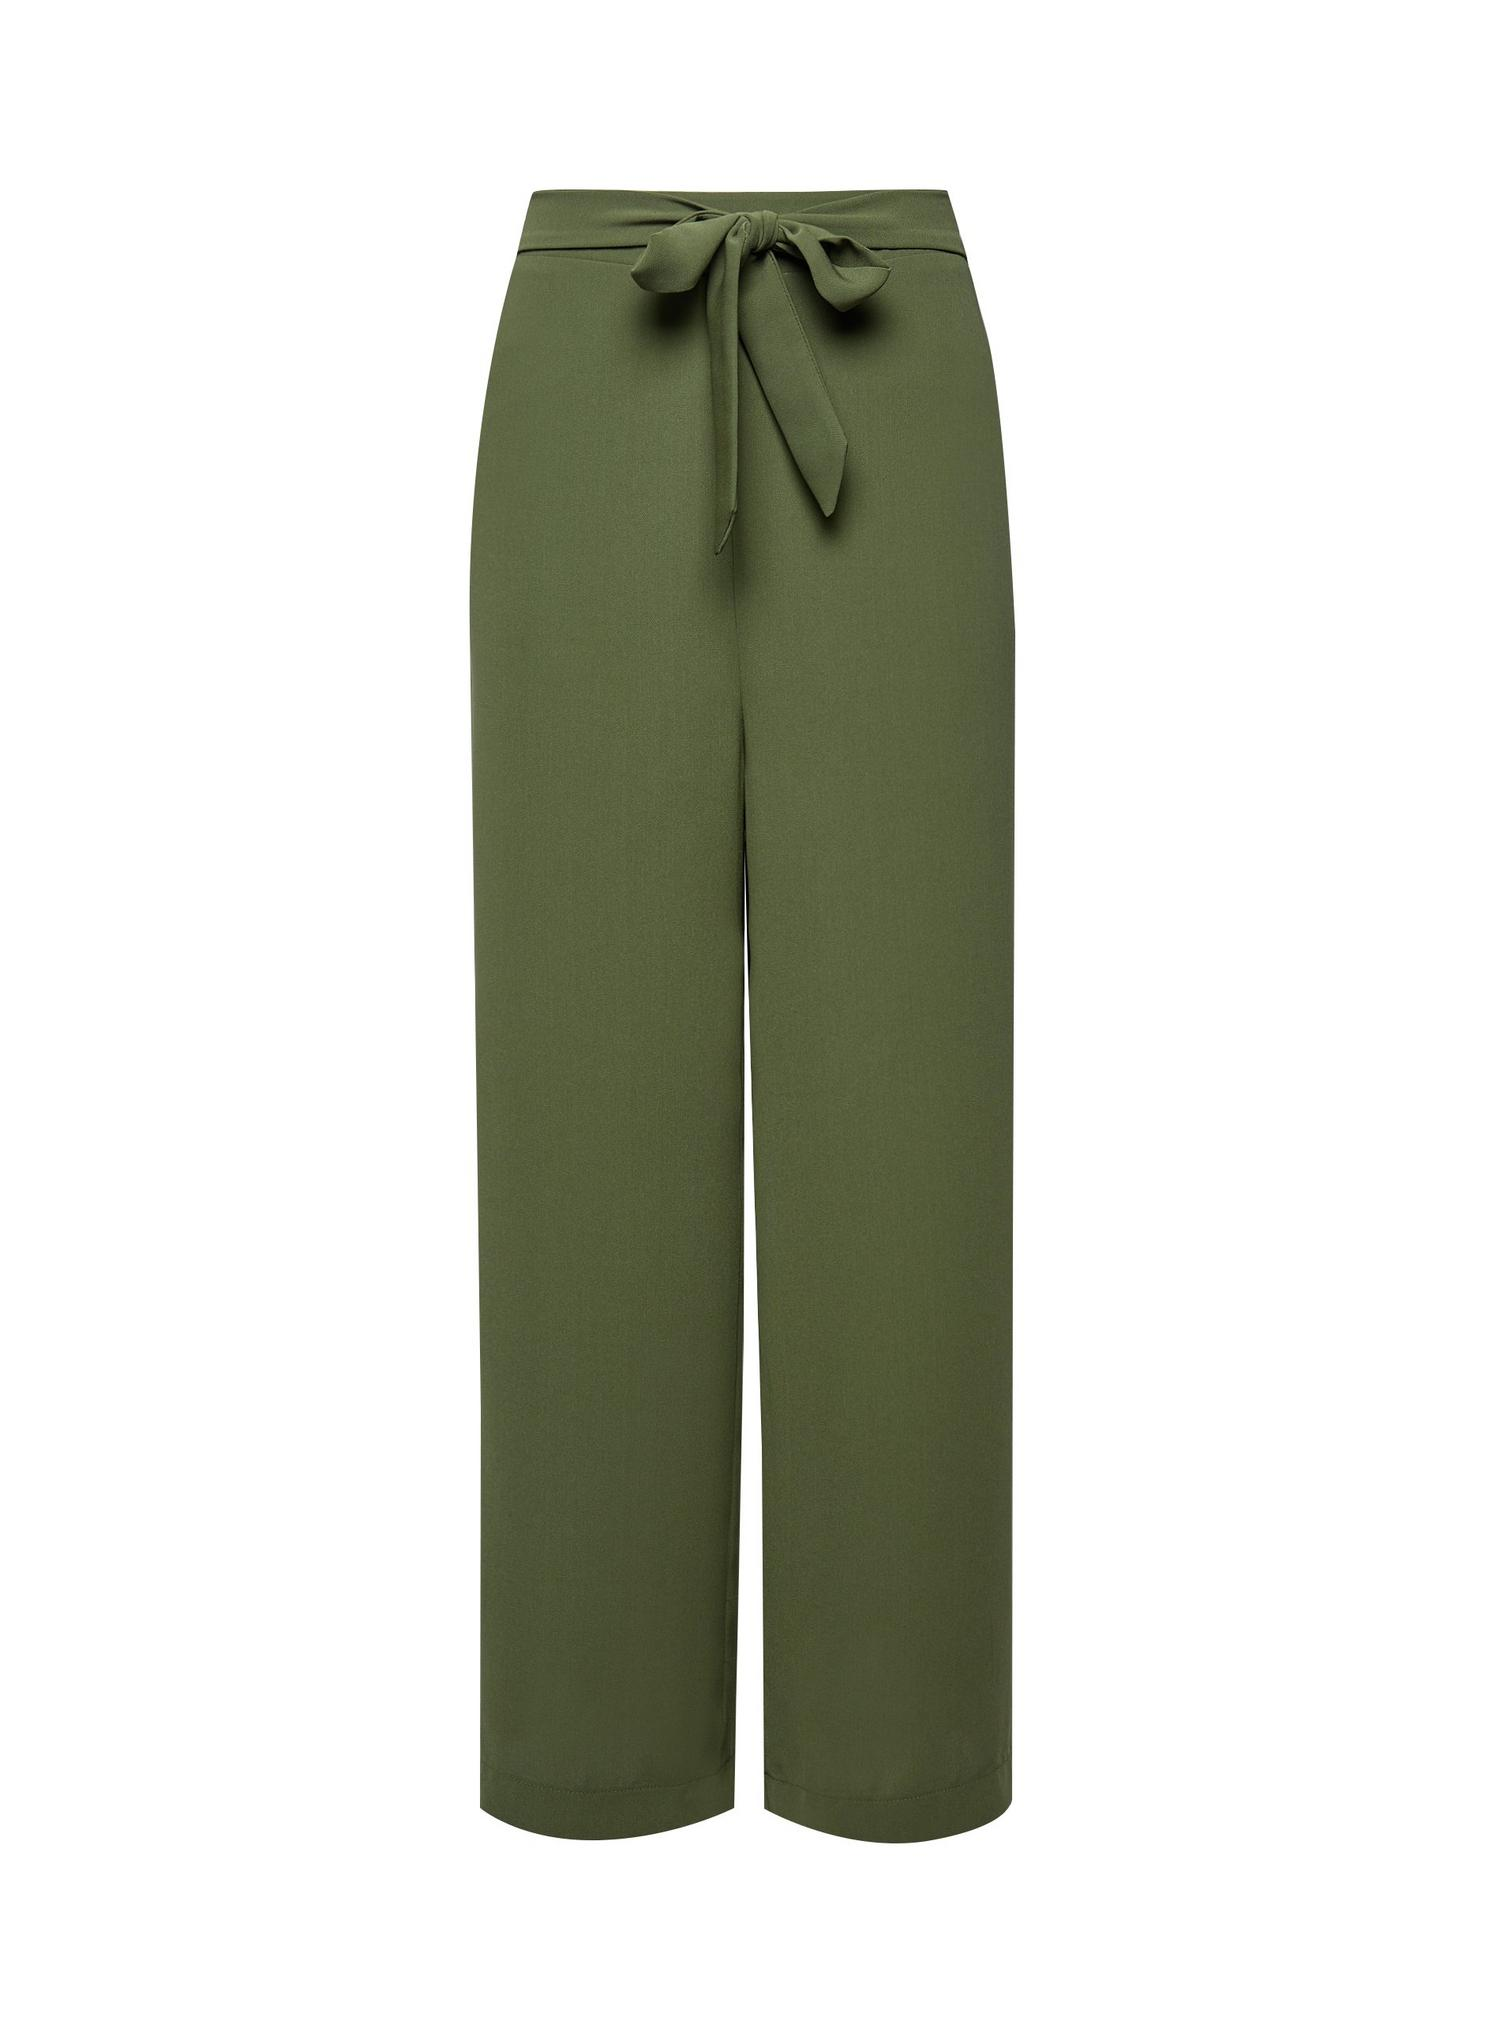 130 Tall Khaki Cropped Palazzo Trousers image number 4